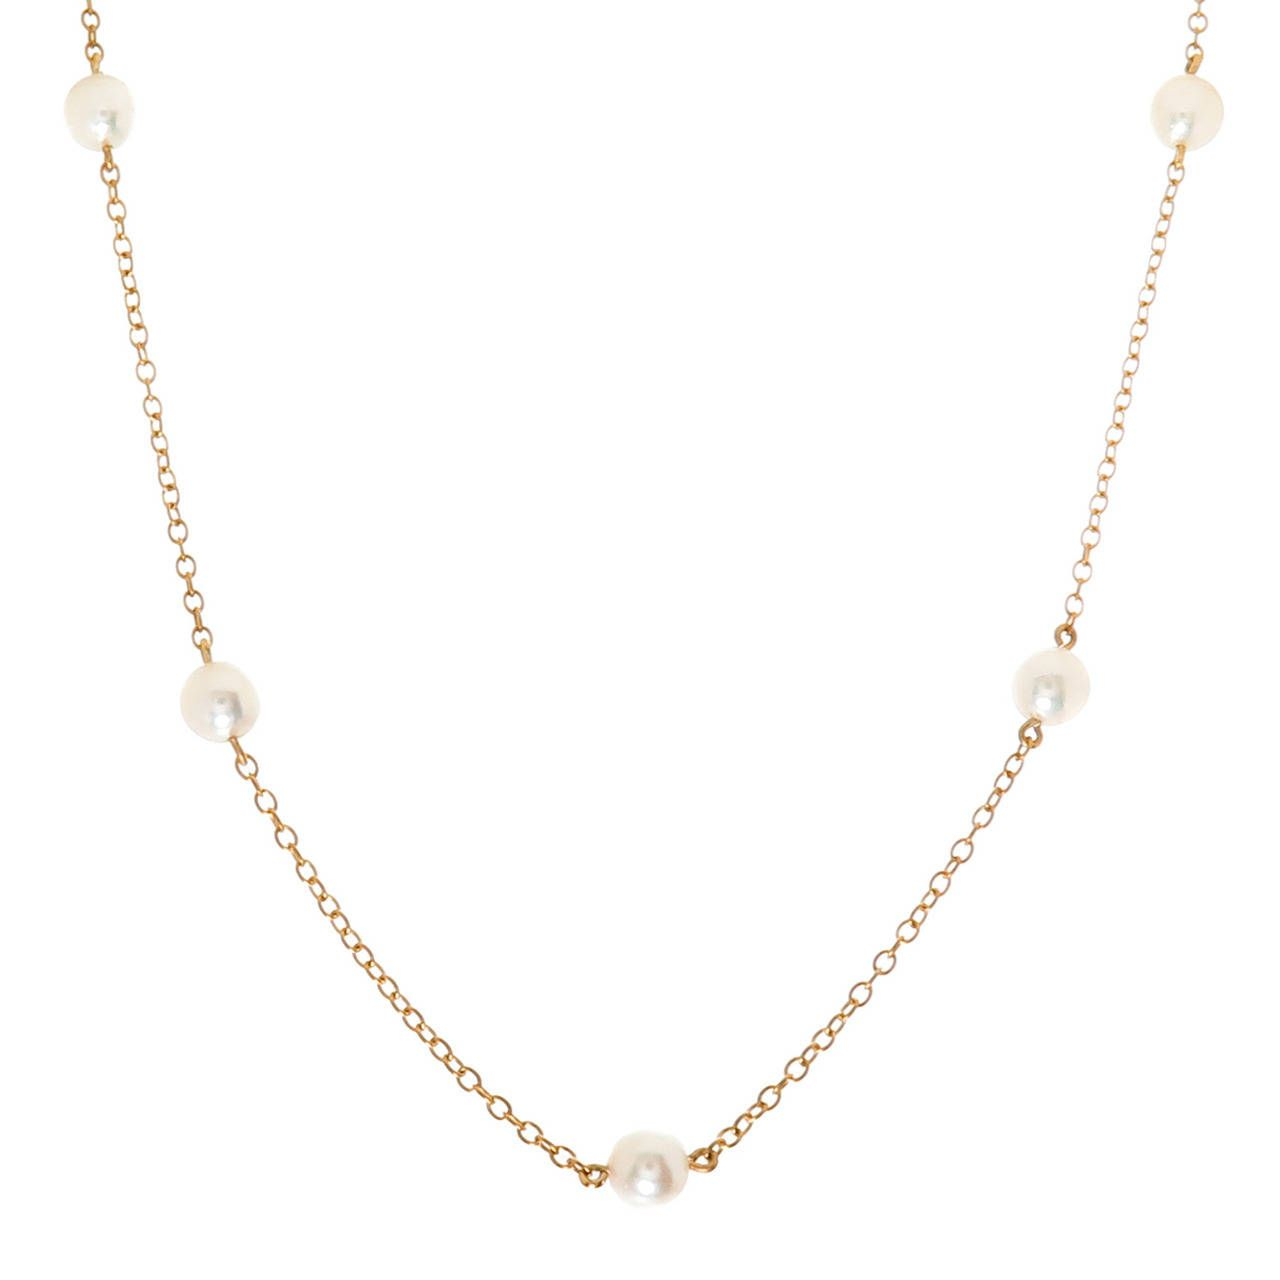 Elsa Peretti Pearls by the Yard sprinkle necklace of cultured pearls in silver - Size Tiffany & Co. KT8ekk7sO9